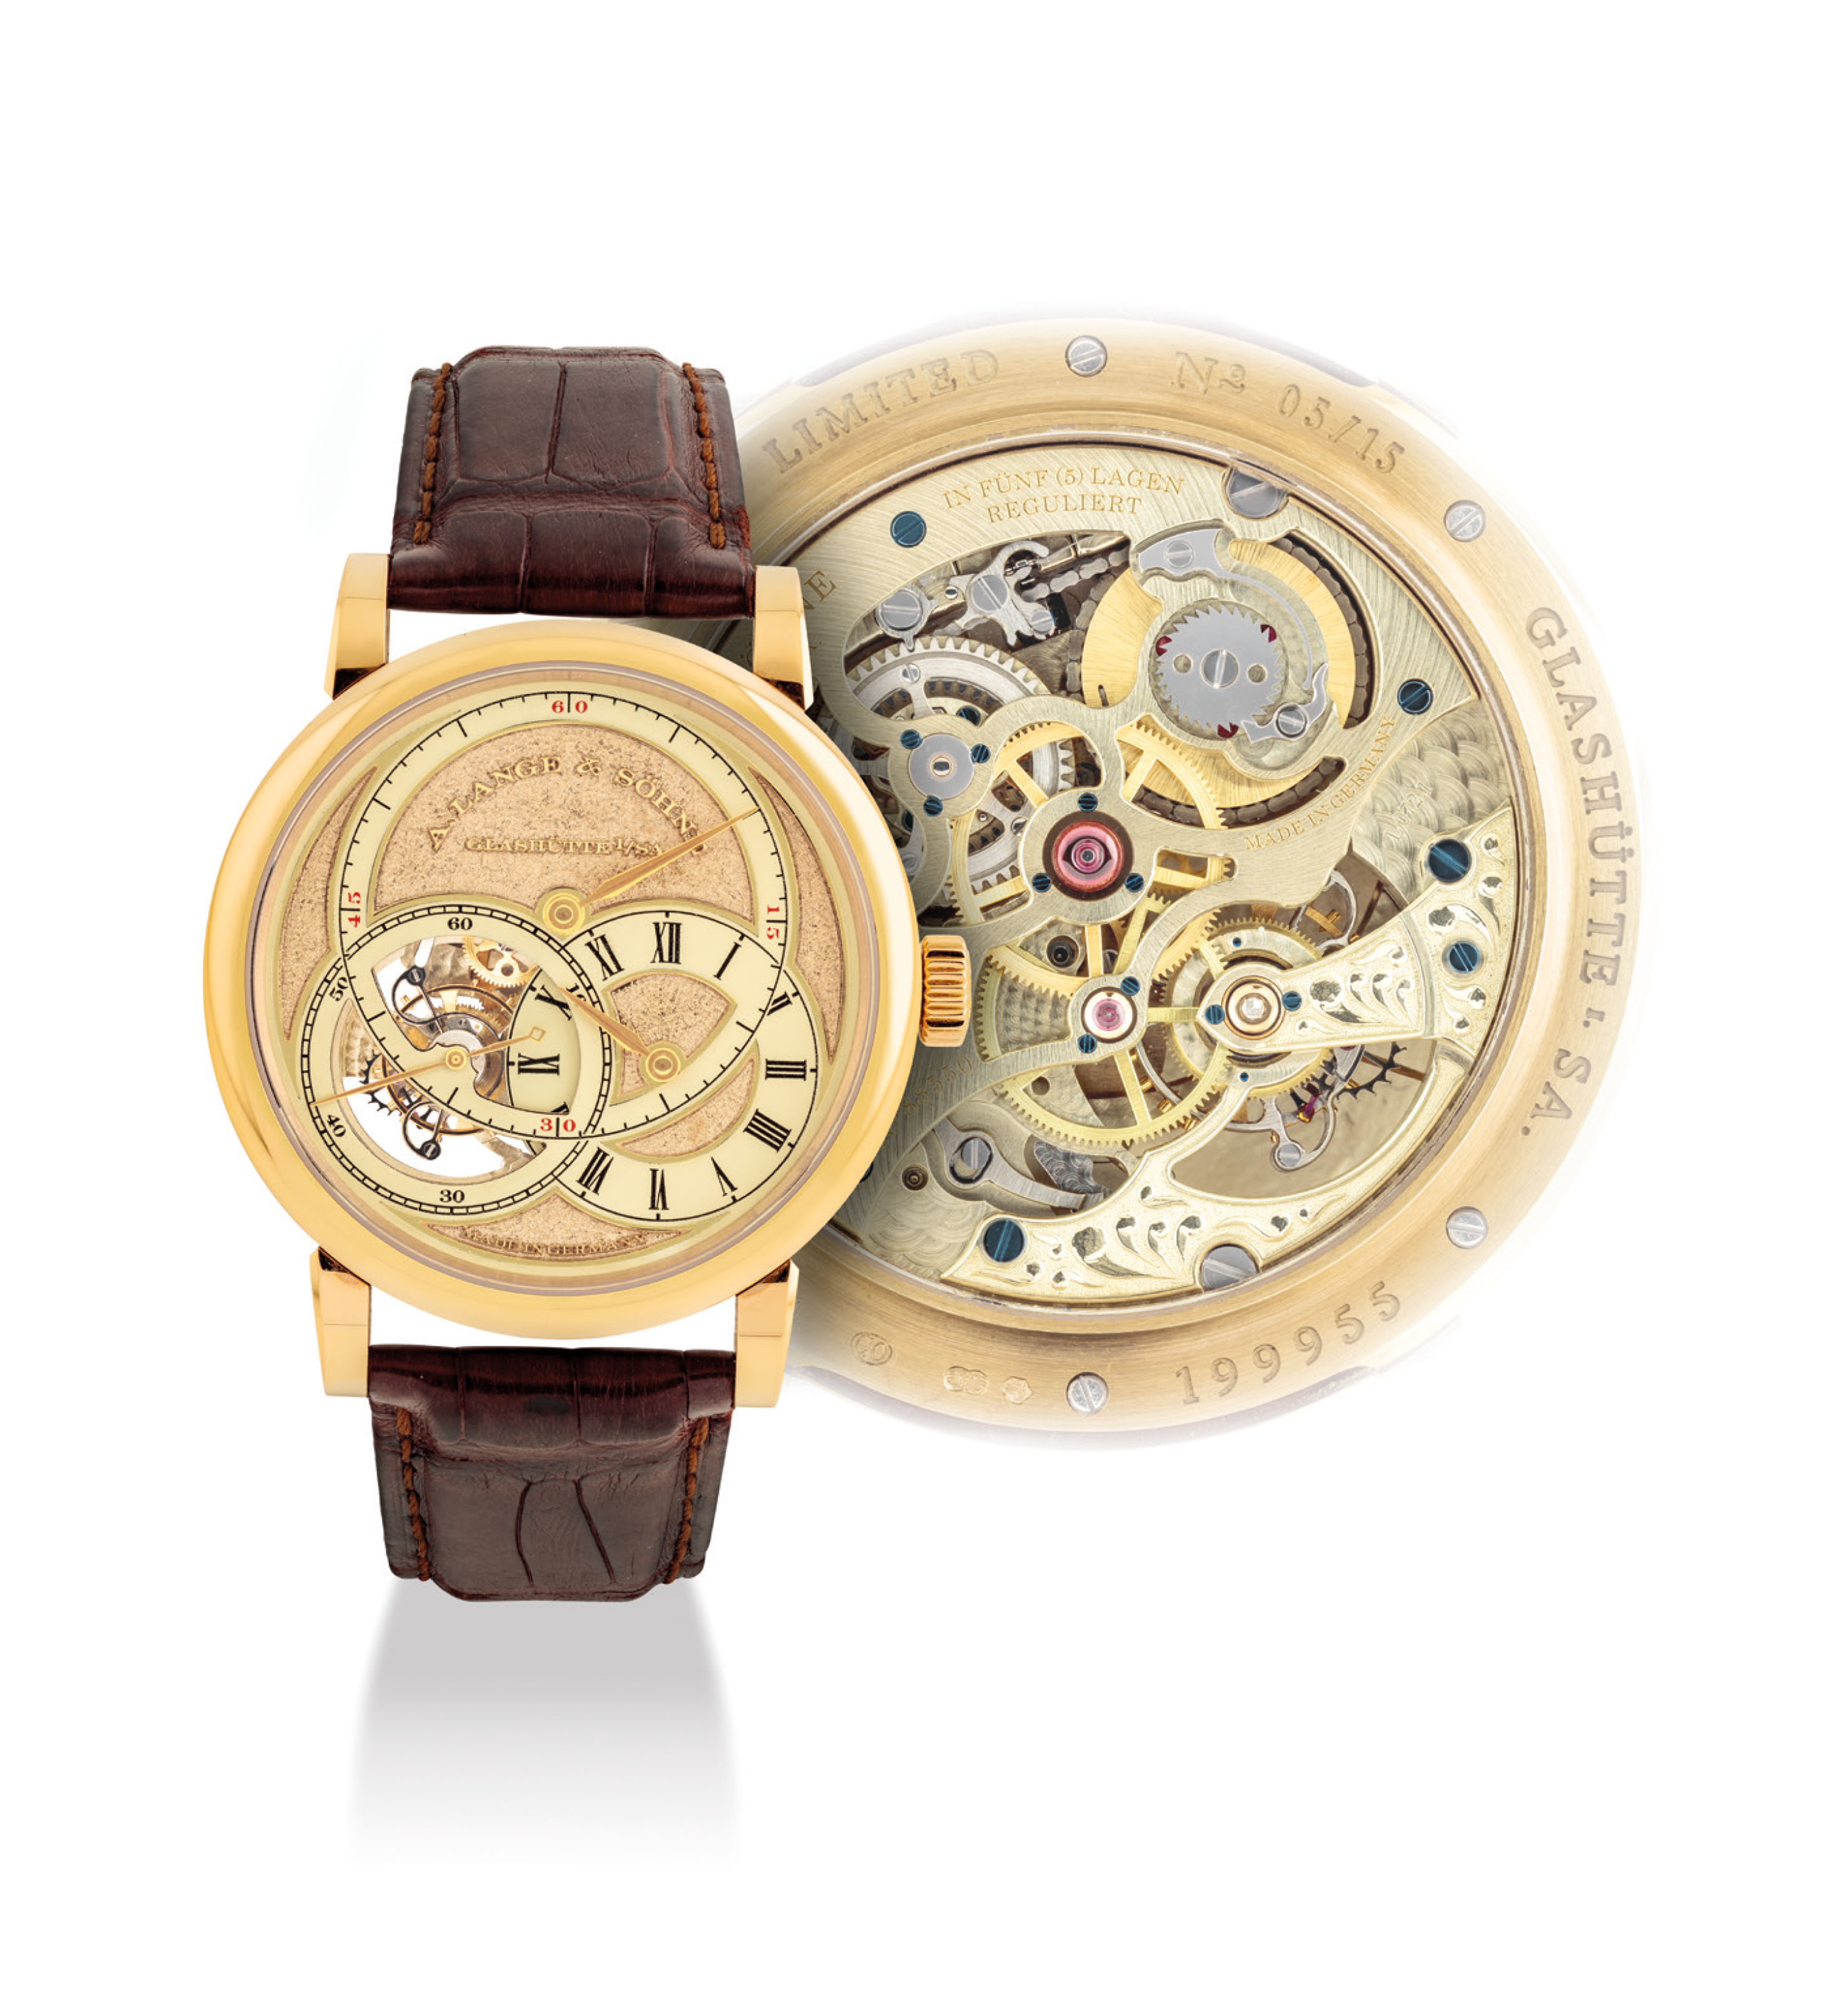 A. LANGE & SÖHNE. A VERY FINE AND EXTREMELY RARE 18K HONEY GOLD BOUTIQUE EXCLUSIVE LIMITED EDITION TOURBILLON WRISTWATCH WITH PATENTED STOP SECONDS MECHANISM, CHAIN FUSEE AND HAND ENGRAVED HONEY GOLD PIVOTING SEGMENT DIAL